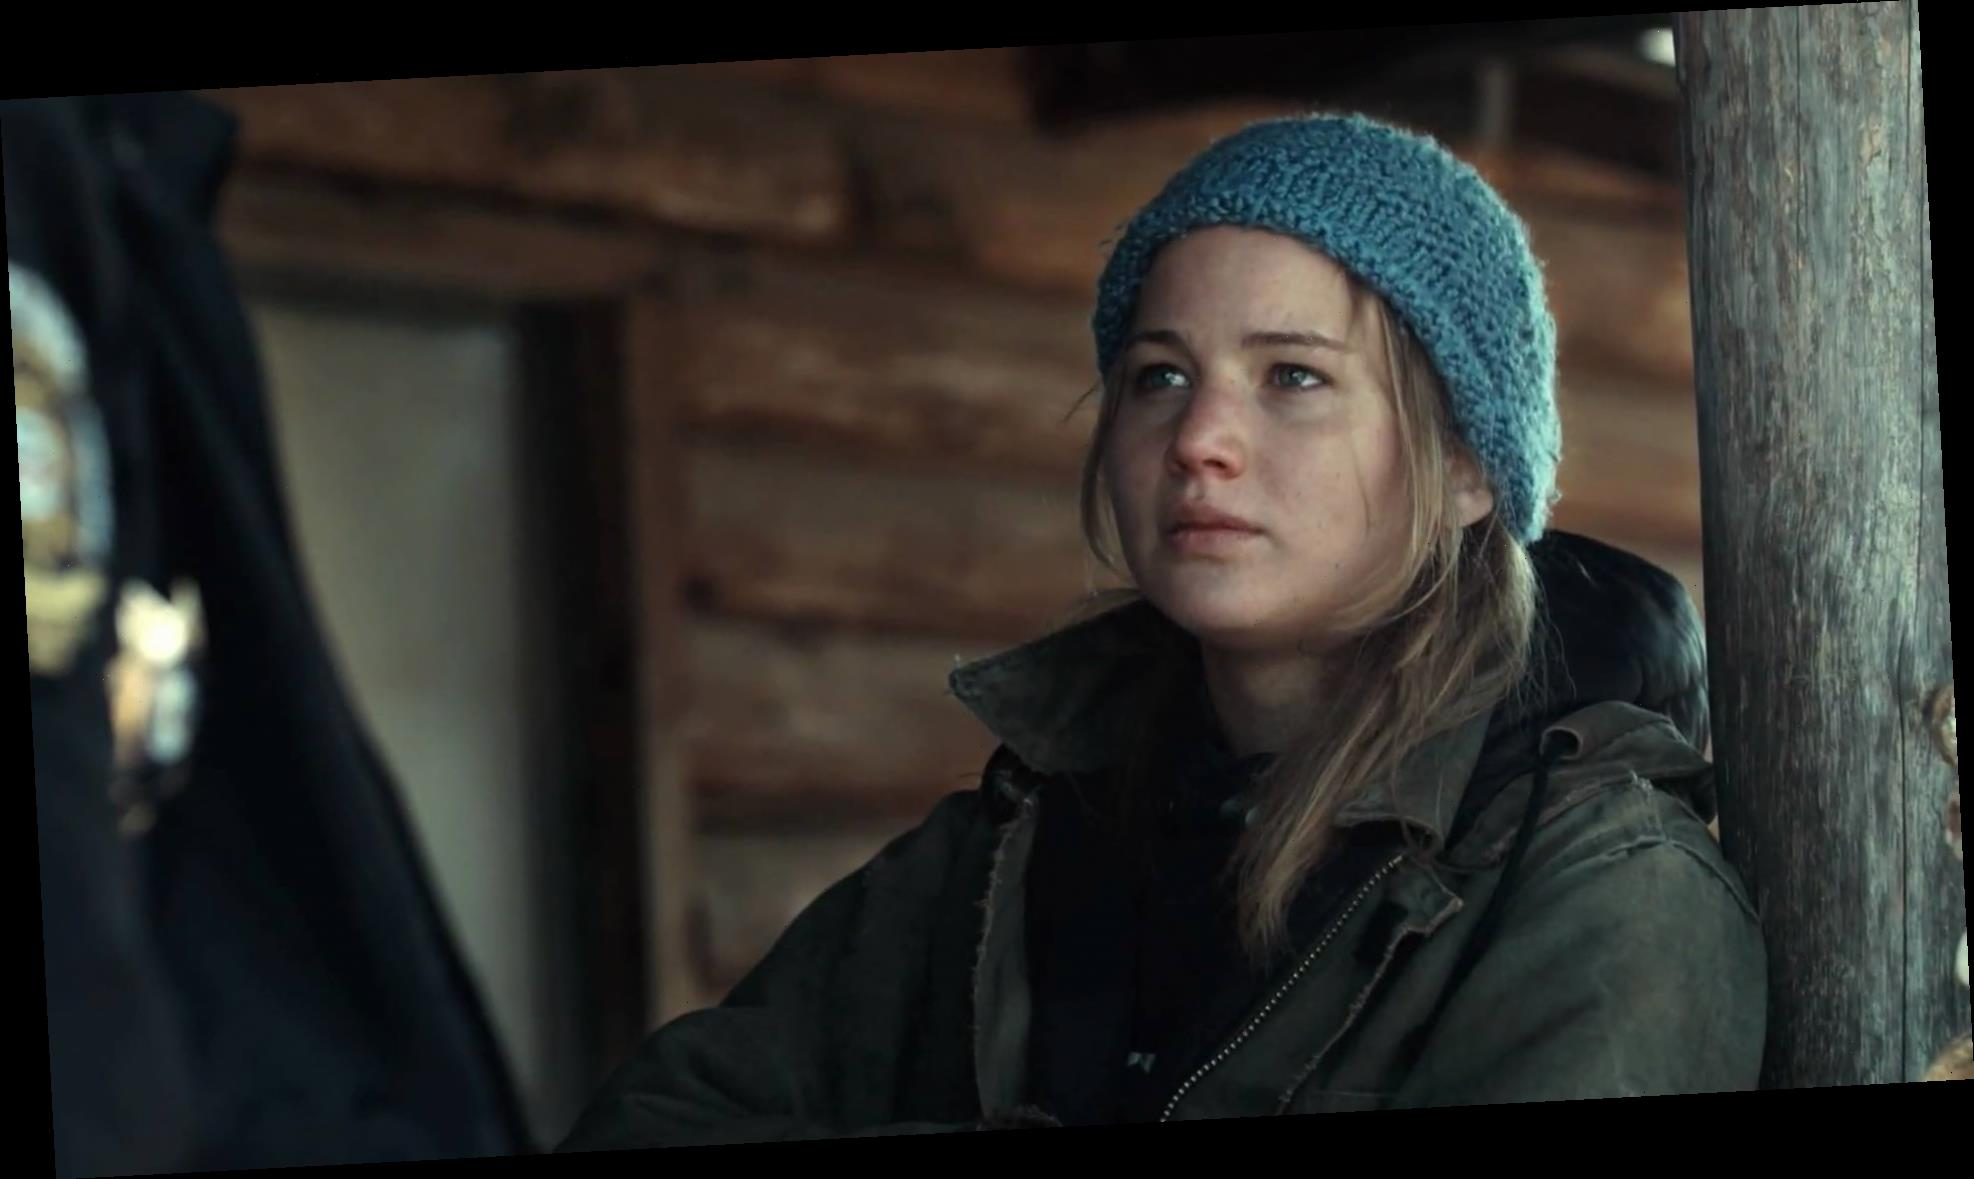 Stream of the Day: 10 Years Ago, 'Winter's Bone' Showed Why Jennifer Lawrence Was the Next Big Thing